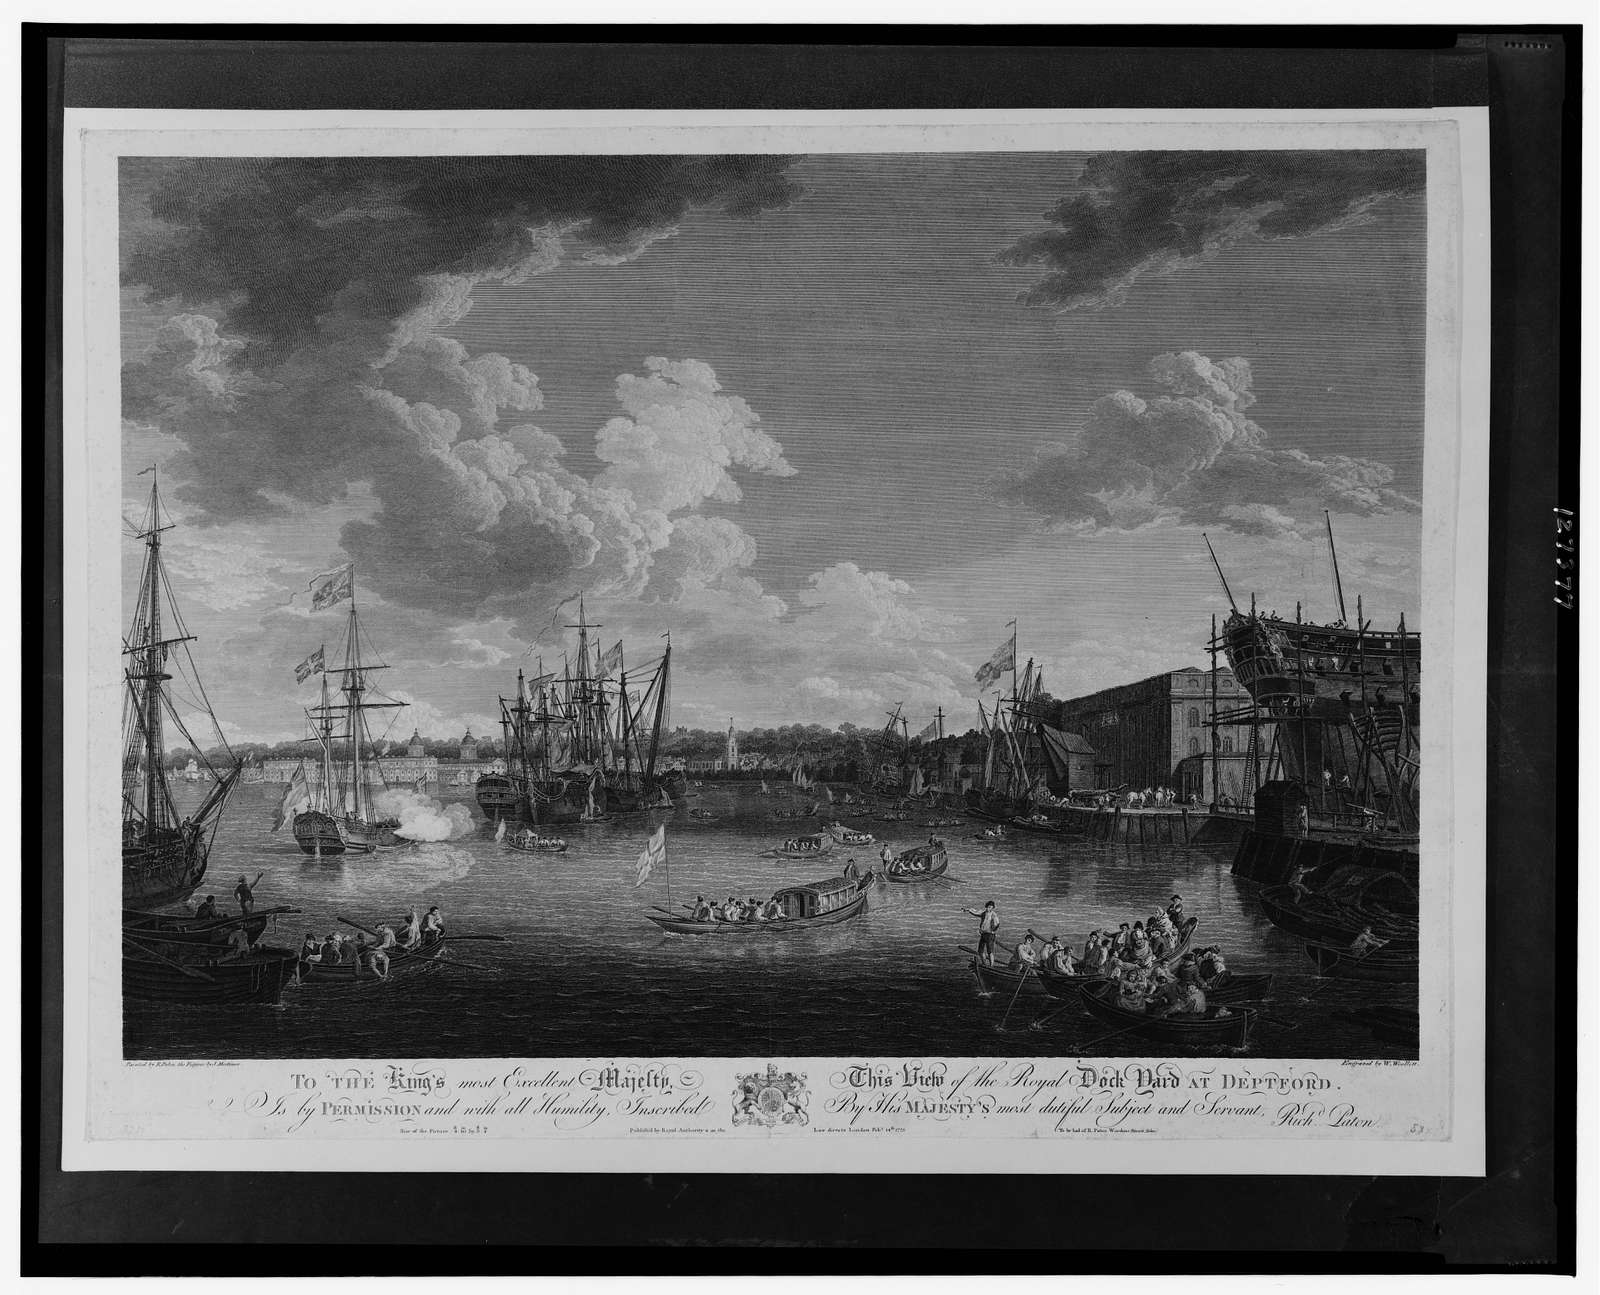 To the King's most excellent majesty, this view of the royal dock yard at Deptford [...] / painted by R. Paton, the figures by J. Mortimer ; engraved by W. Woollett.